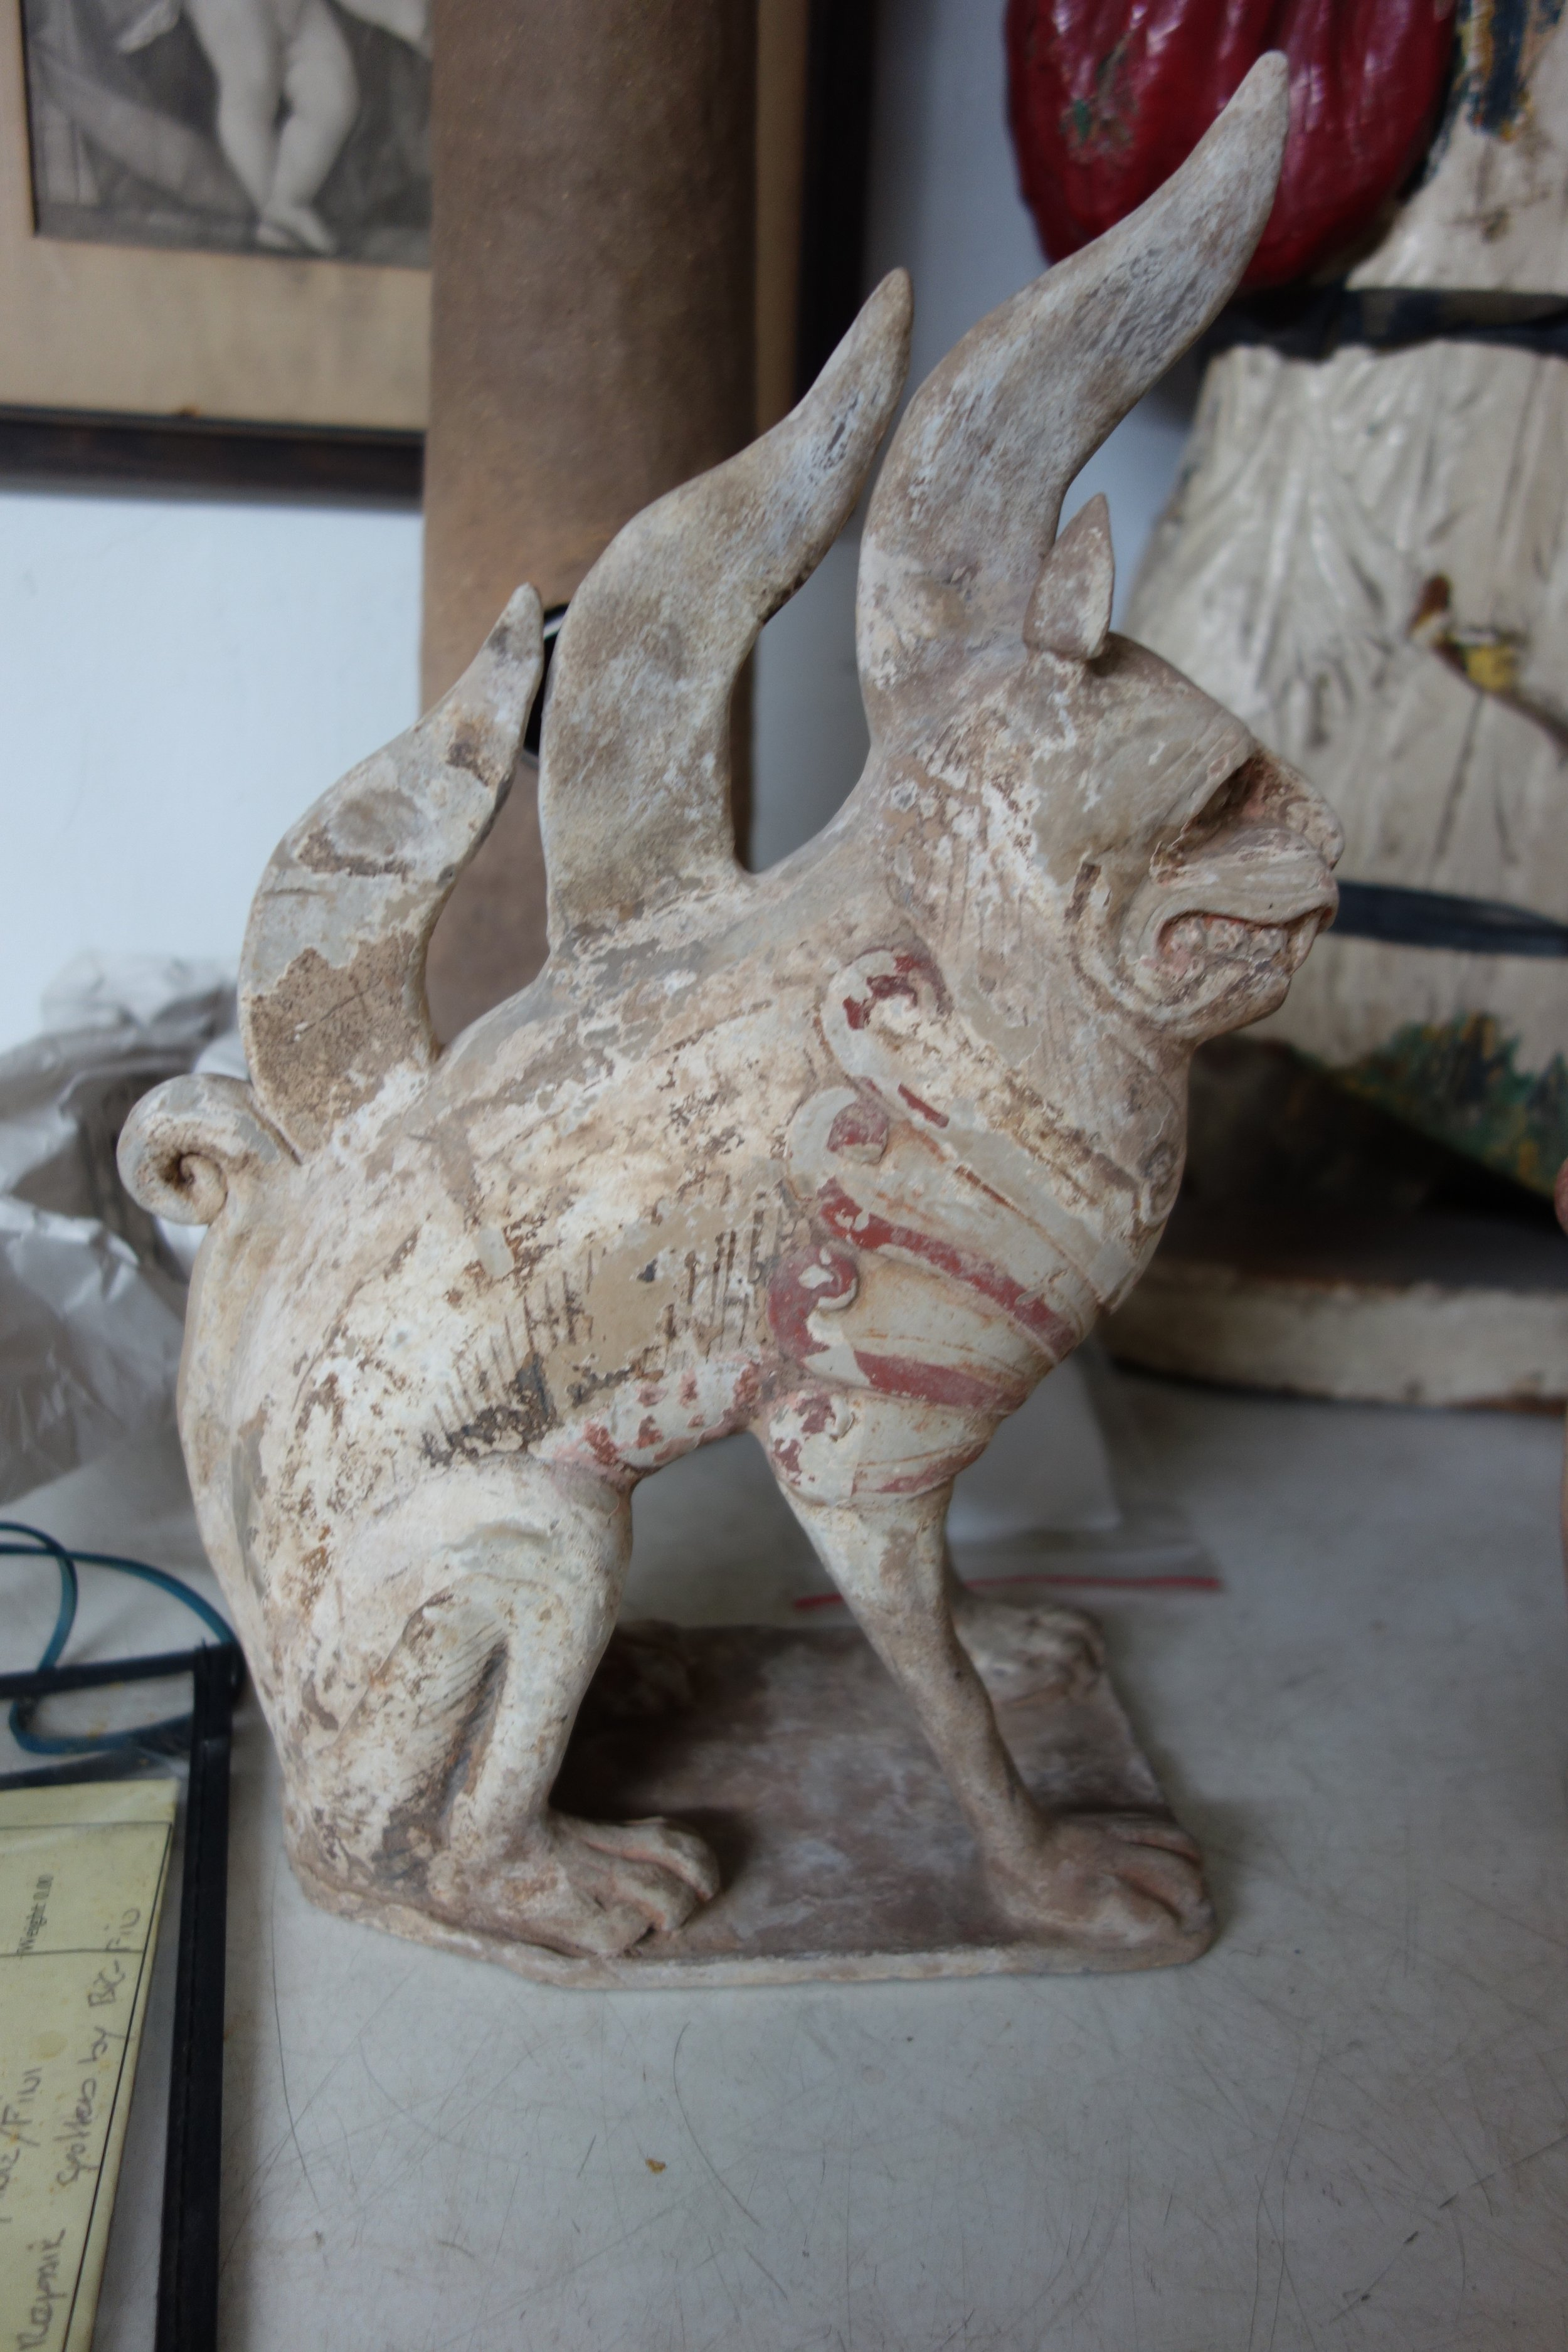 nknown Shaanxi province China Object - A pair of painted earth Spirits